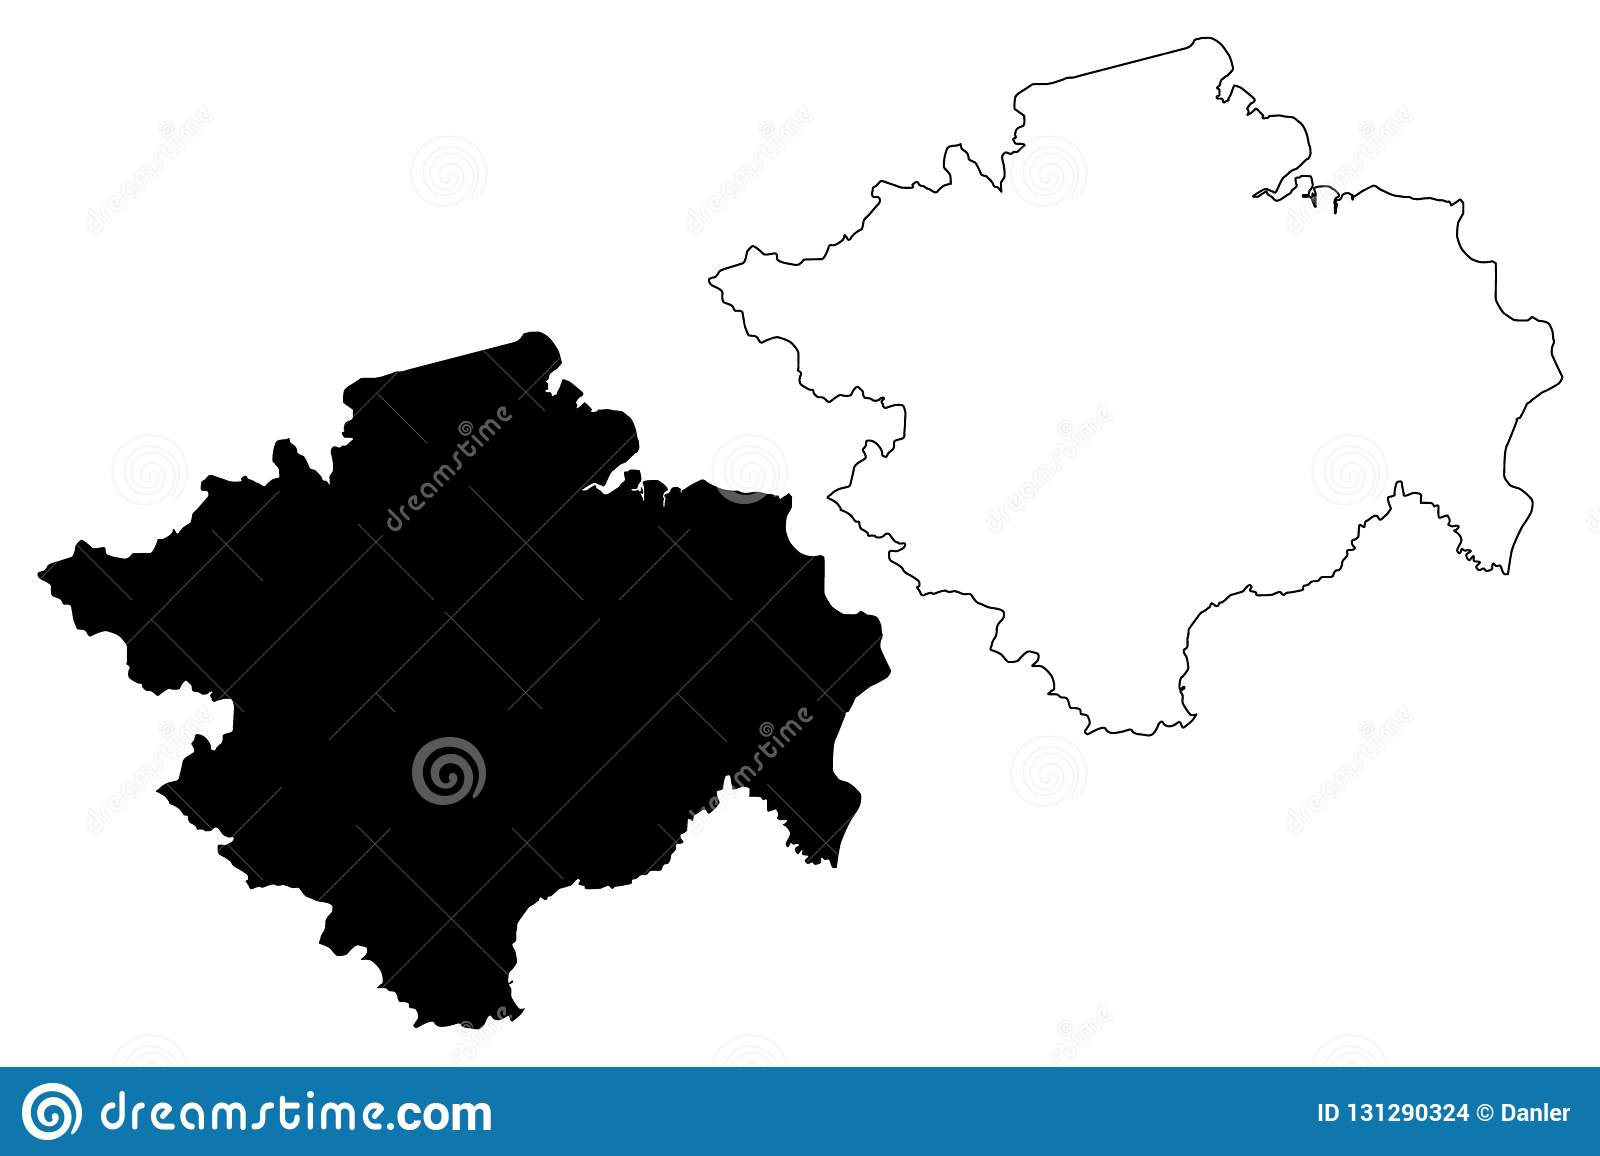 South Sumatra map vector stock vector. Illustration of ... on